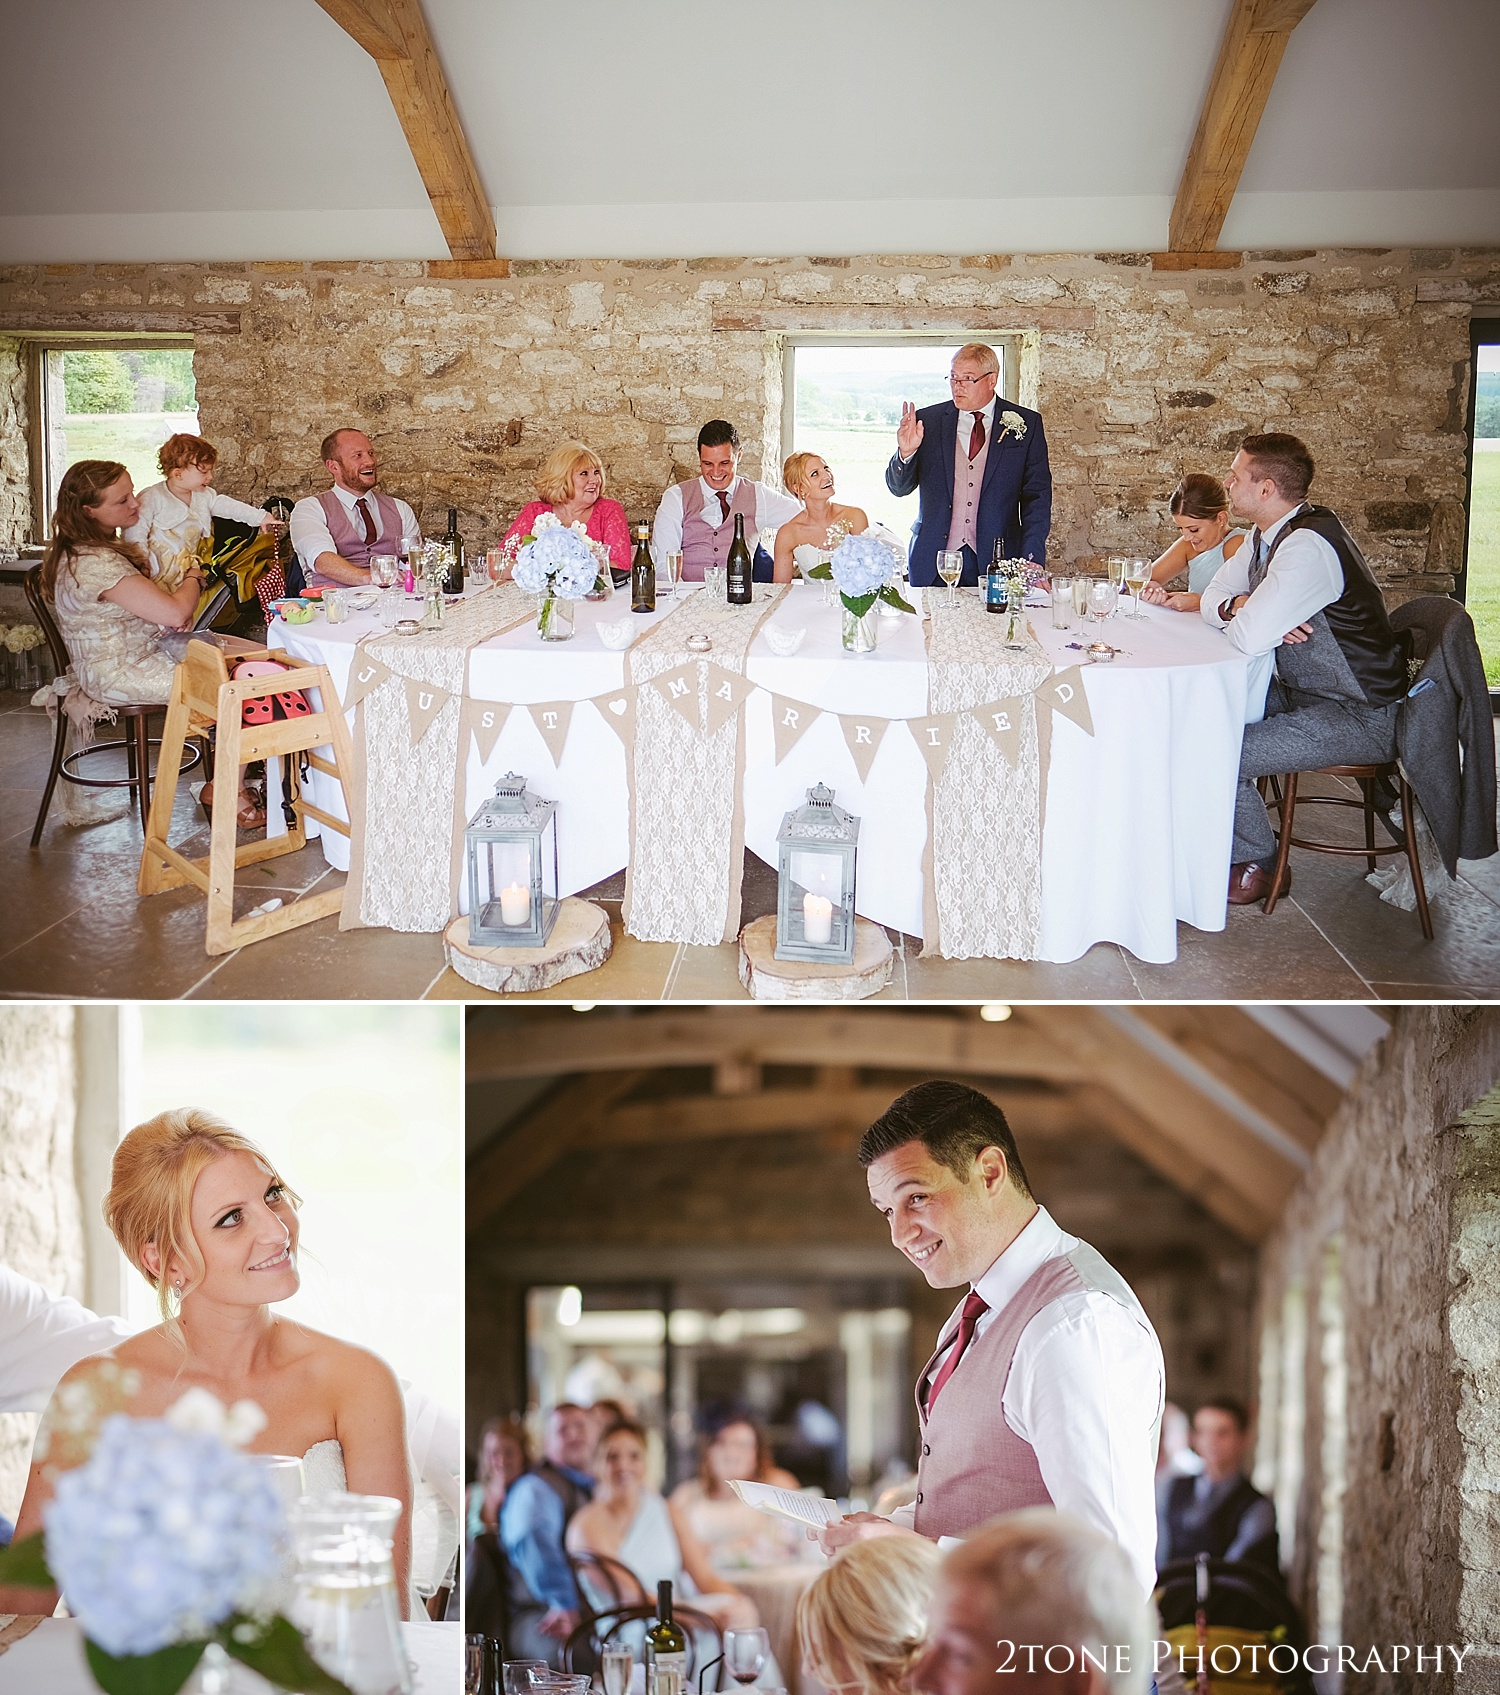 Speeches at Healey Barn by wedding photography team, 2tone Photography www.2tonephotography.co.uk